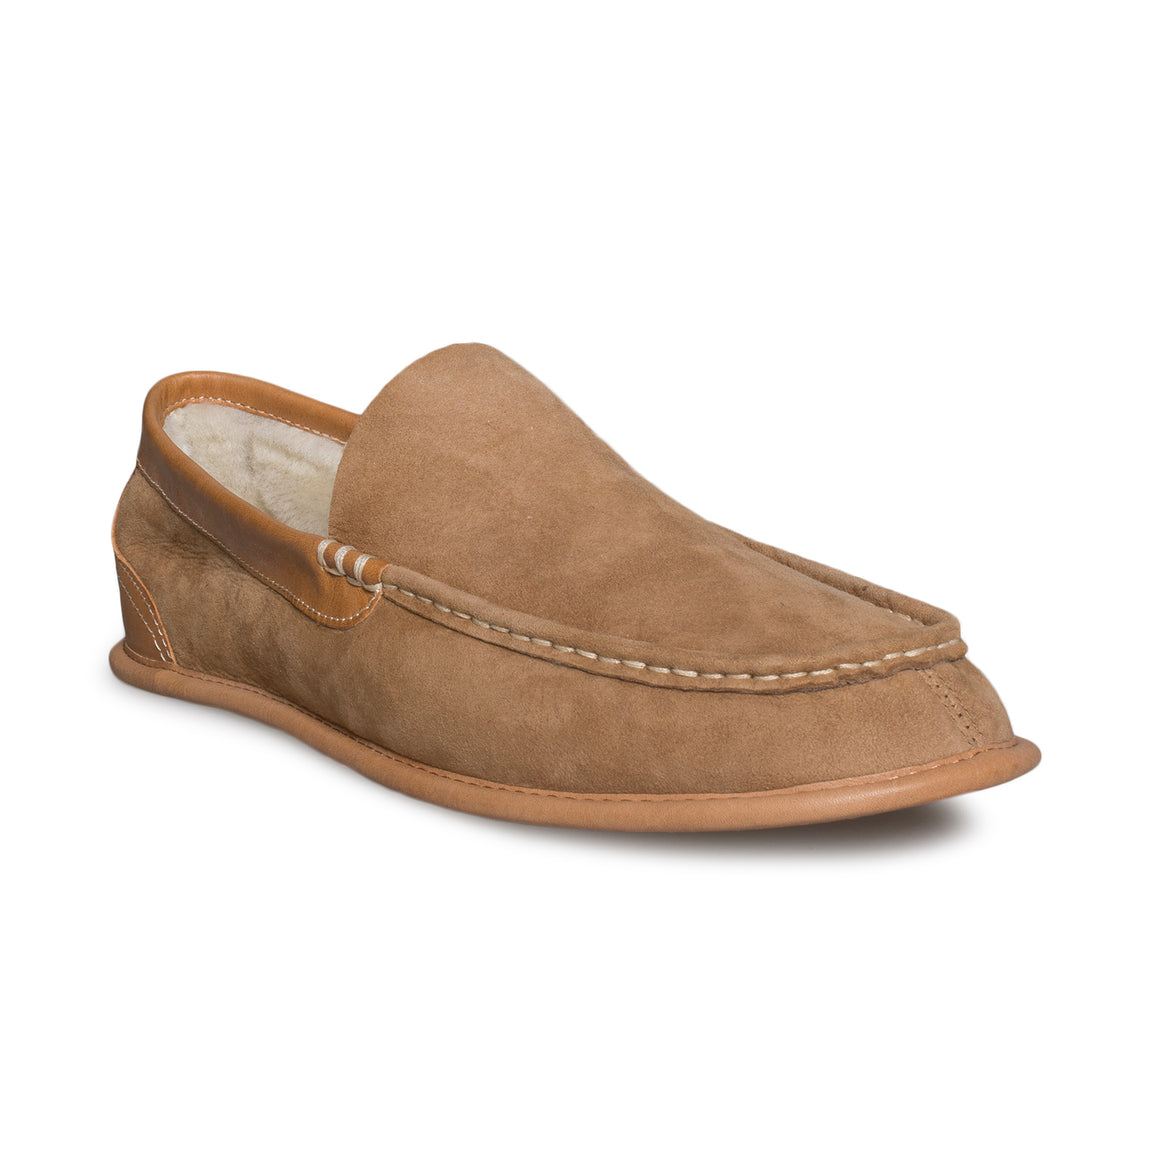 UGG Lorne Chestnut Shoes - Men's